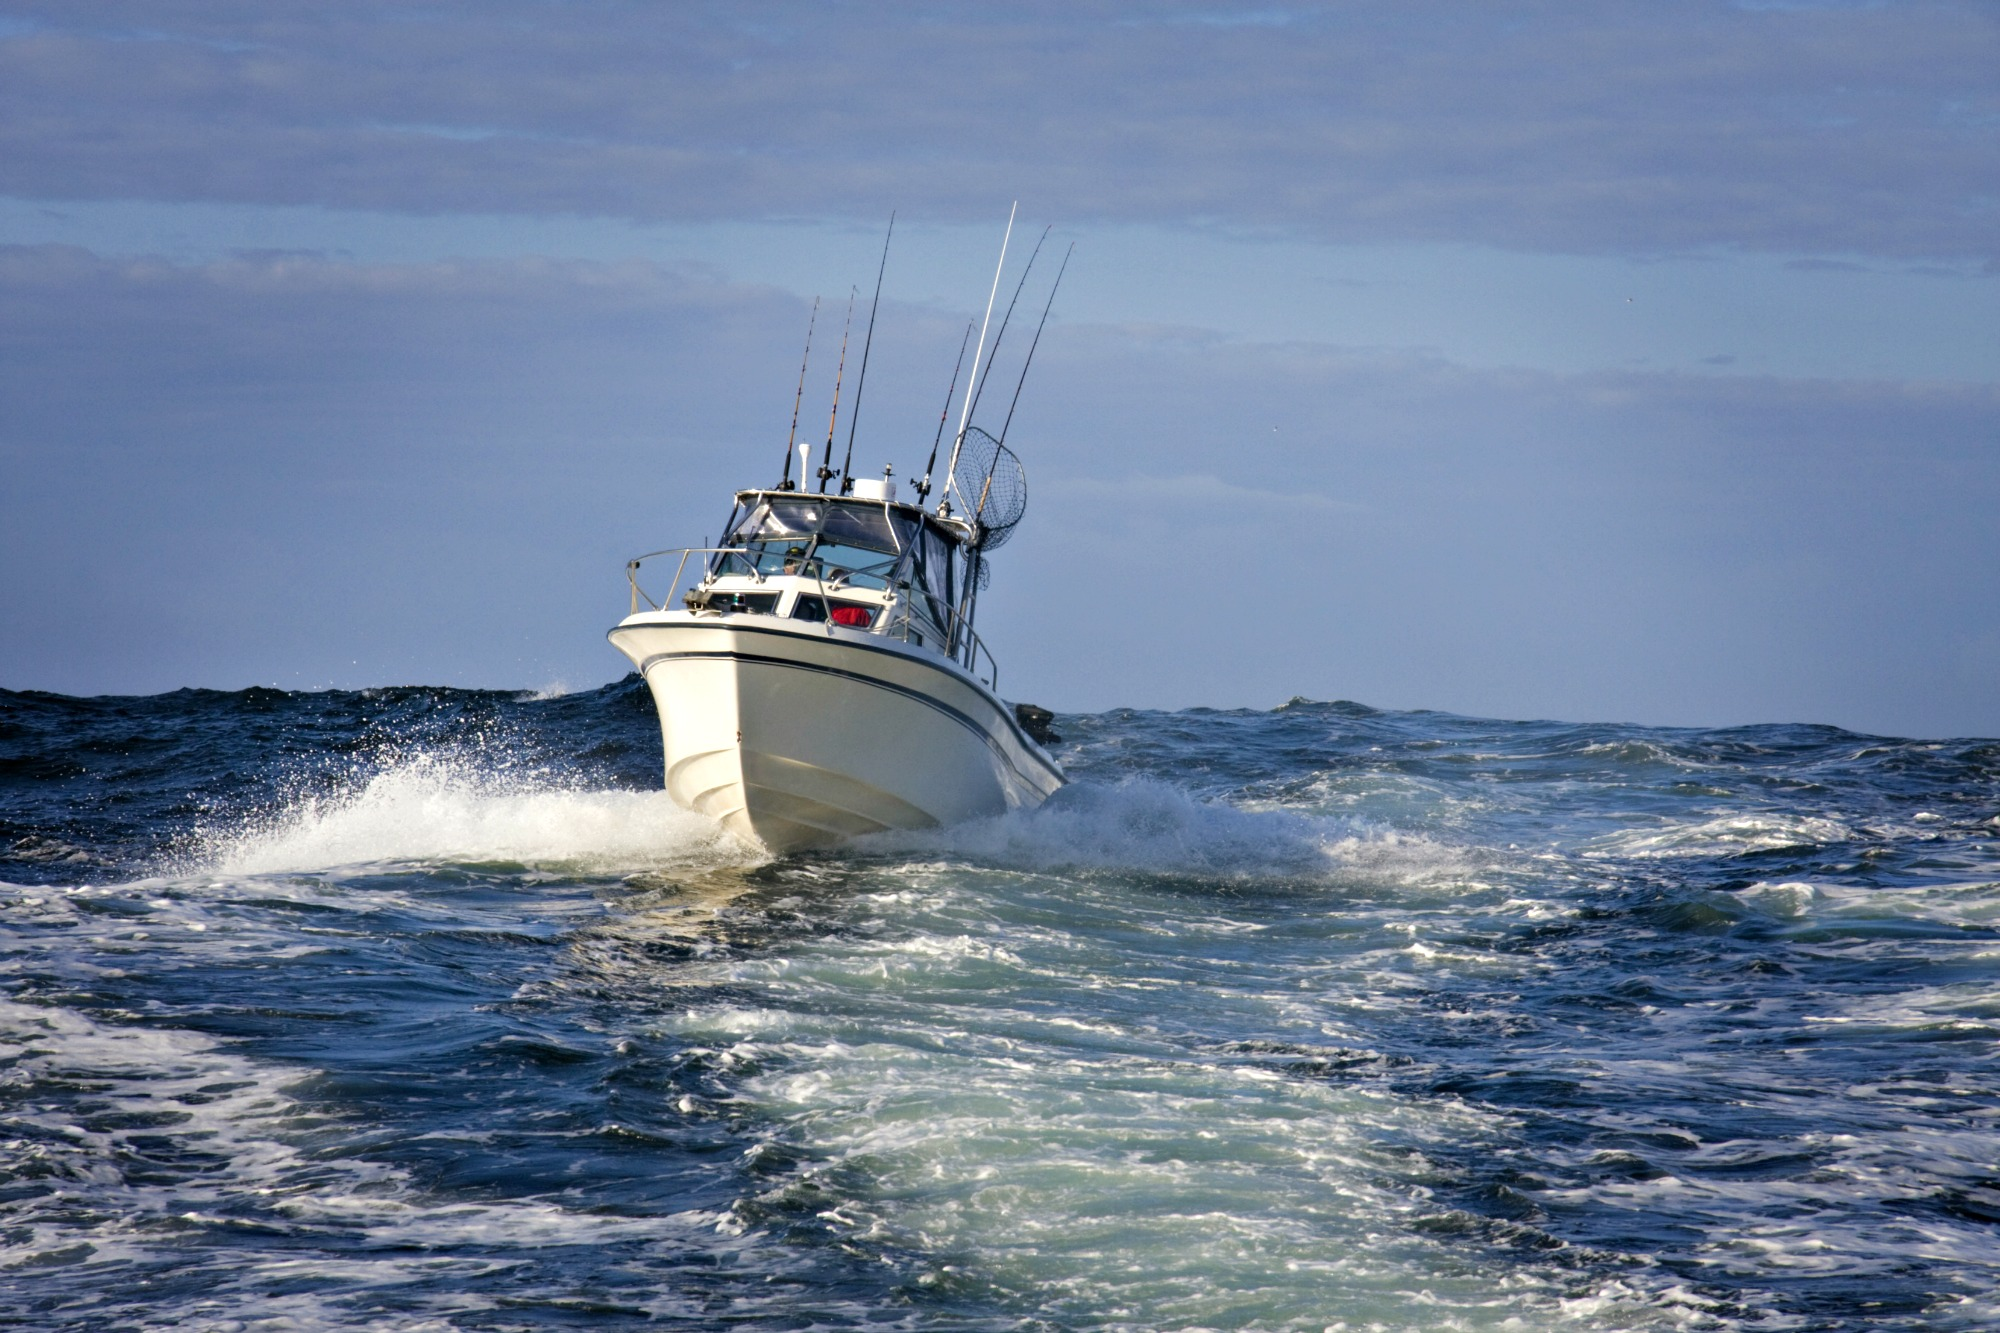 Gulf coast fishing in northwest florida and alabama a for Florida gulf fish